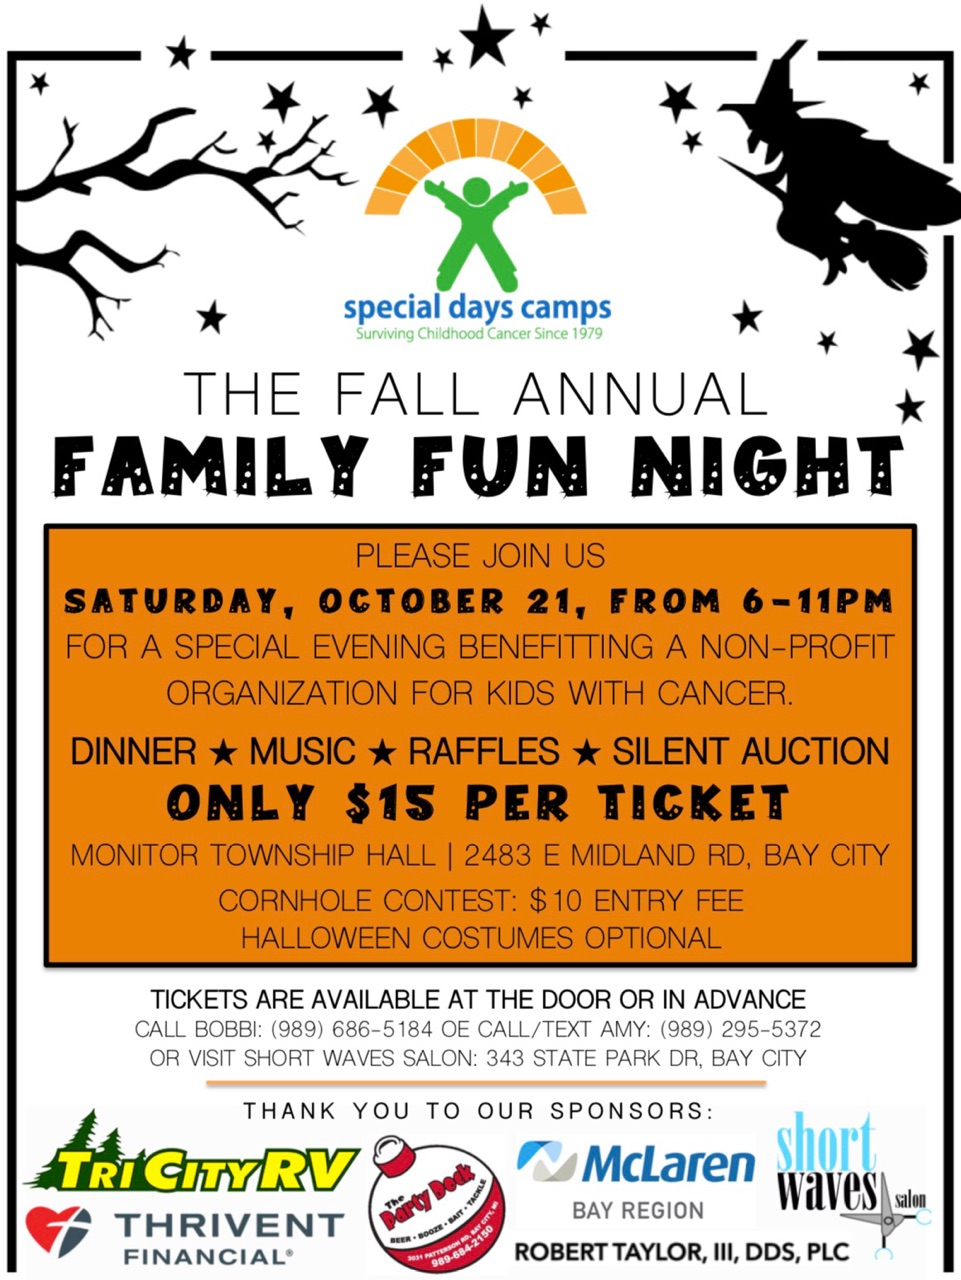 Please Join Us Saturday October 21st At Monitor Township Hall For An Evening Benefiting Special Days Camps Tickets Are 15 Each And Include Dinner Music